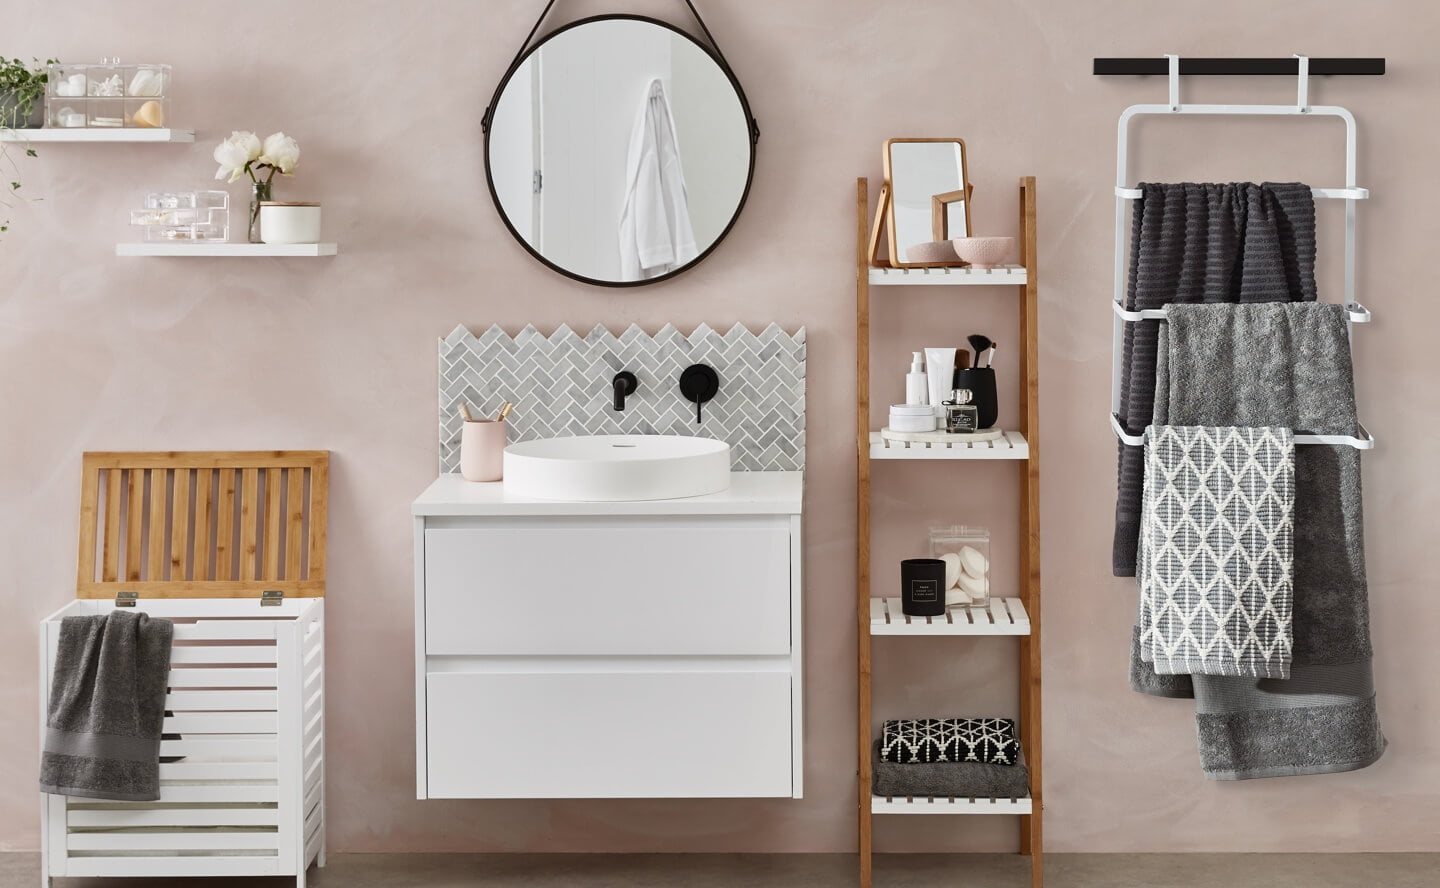 Best 15 Brilliant Bathroom Storage Ideas For Small Spaces